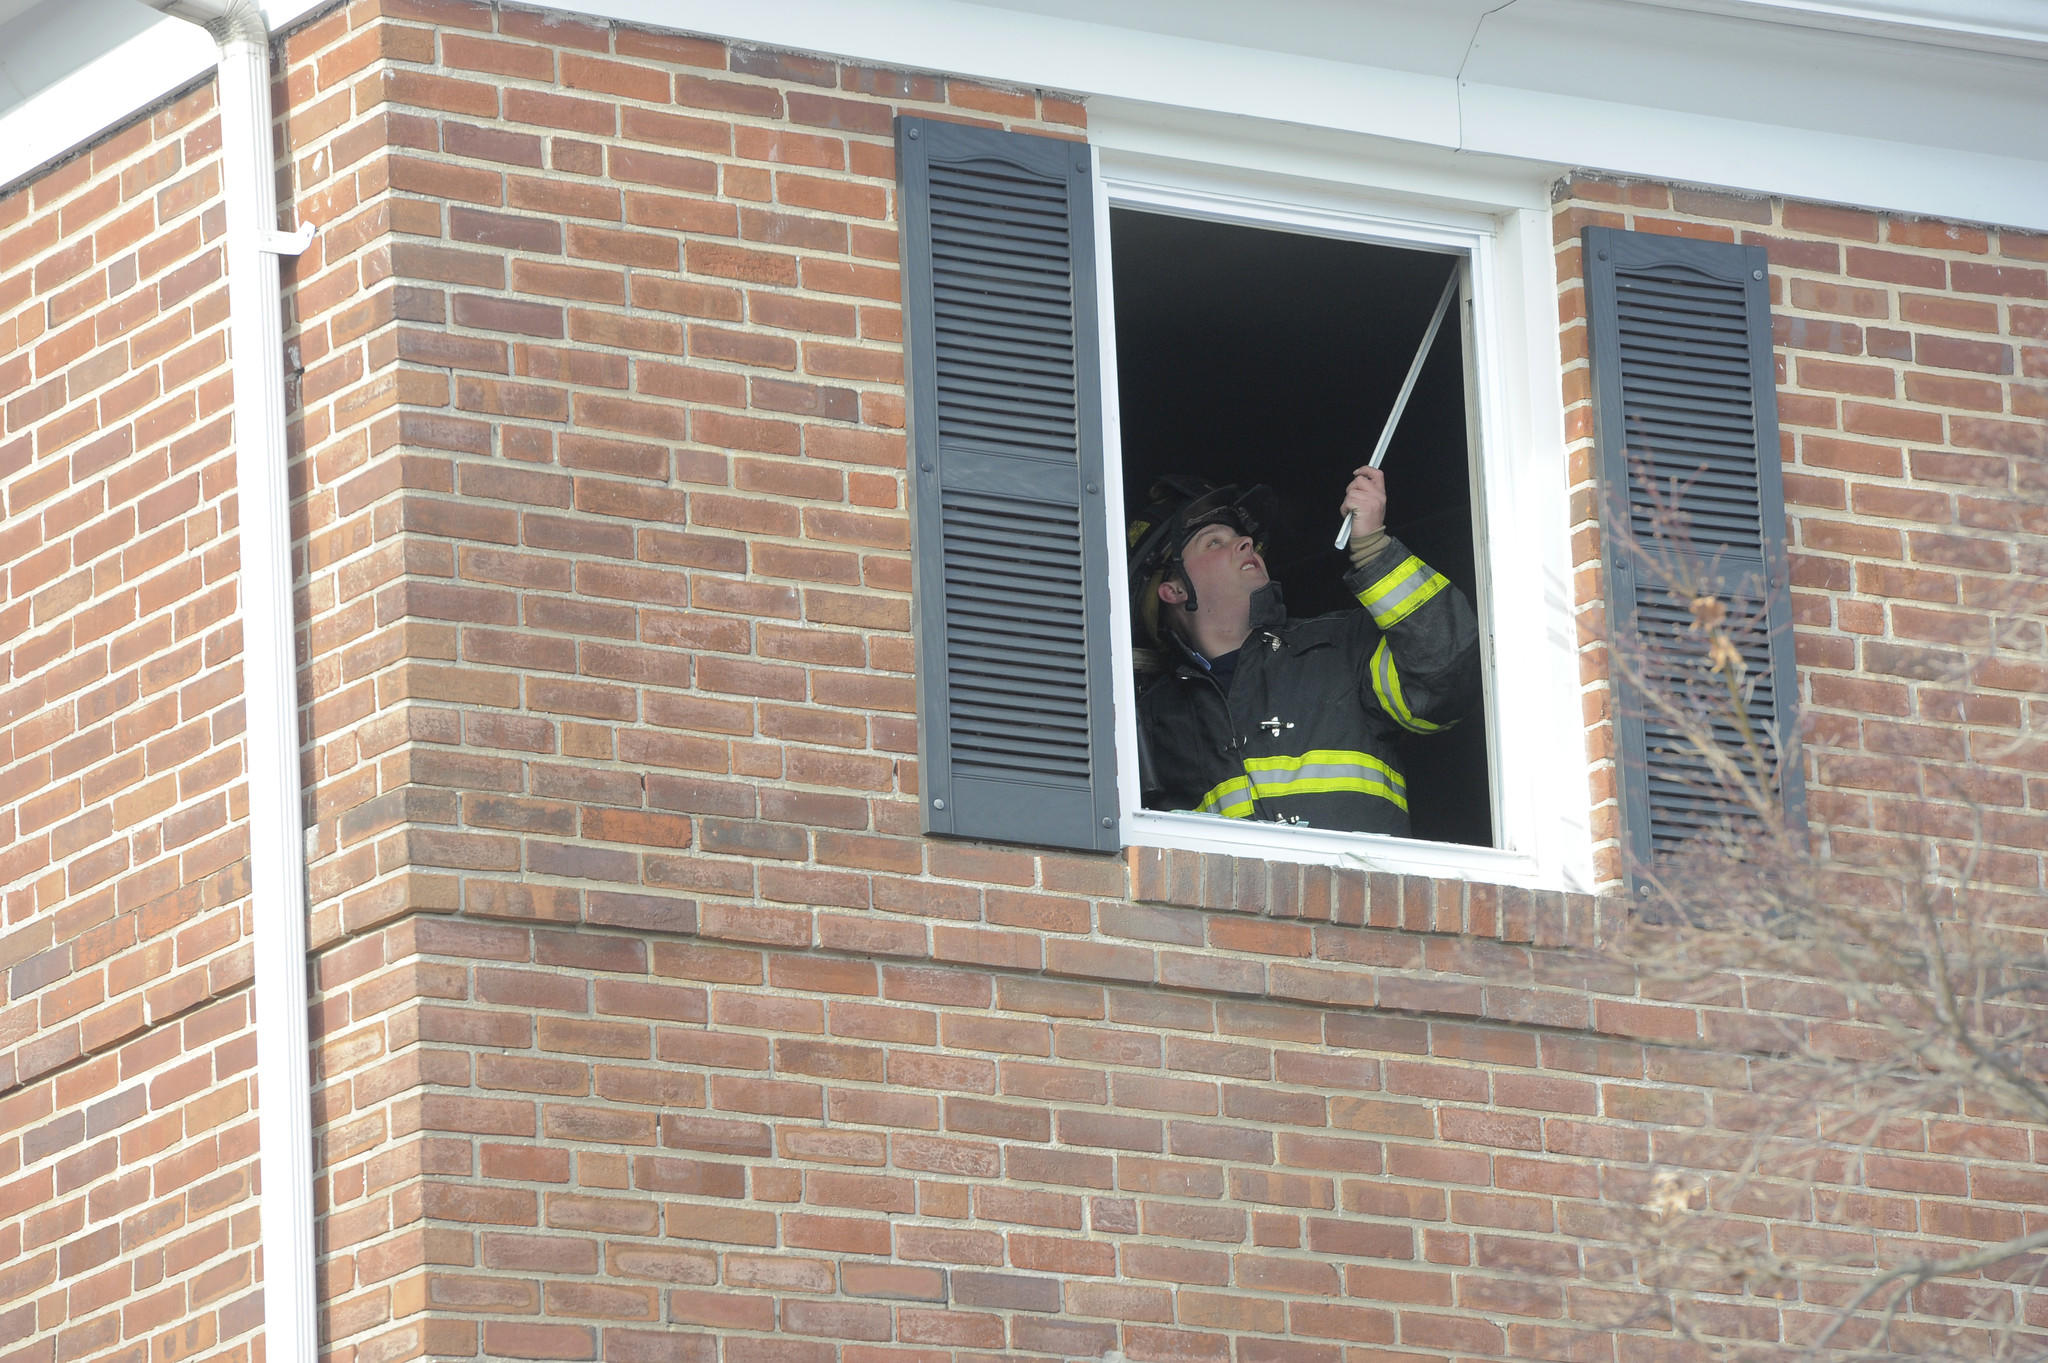 A Baltimore City firefighter removes a curtain rod before covering an open window with plastic sheeting.